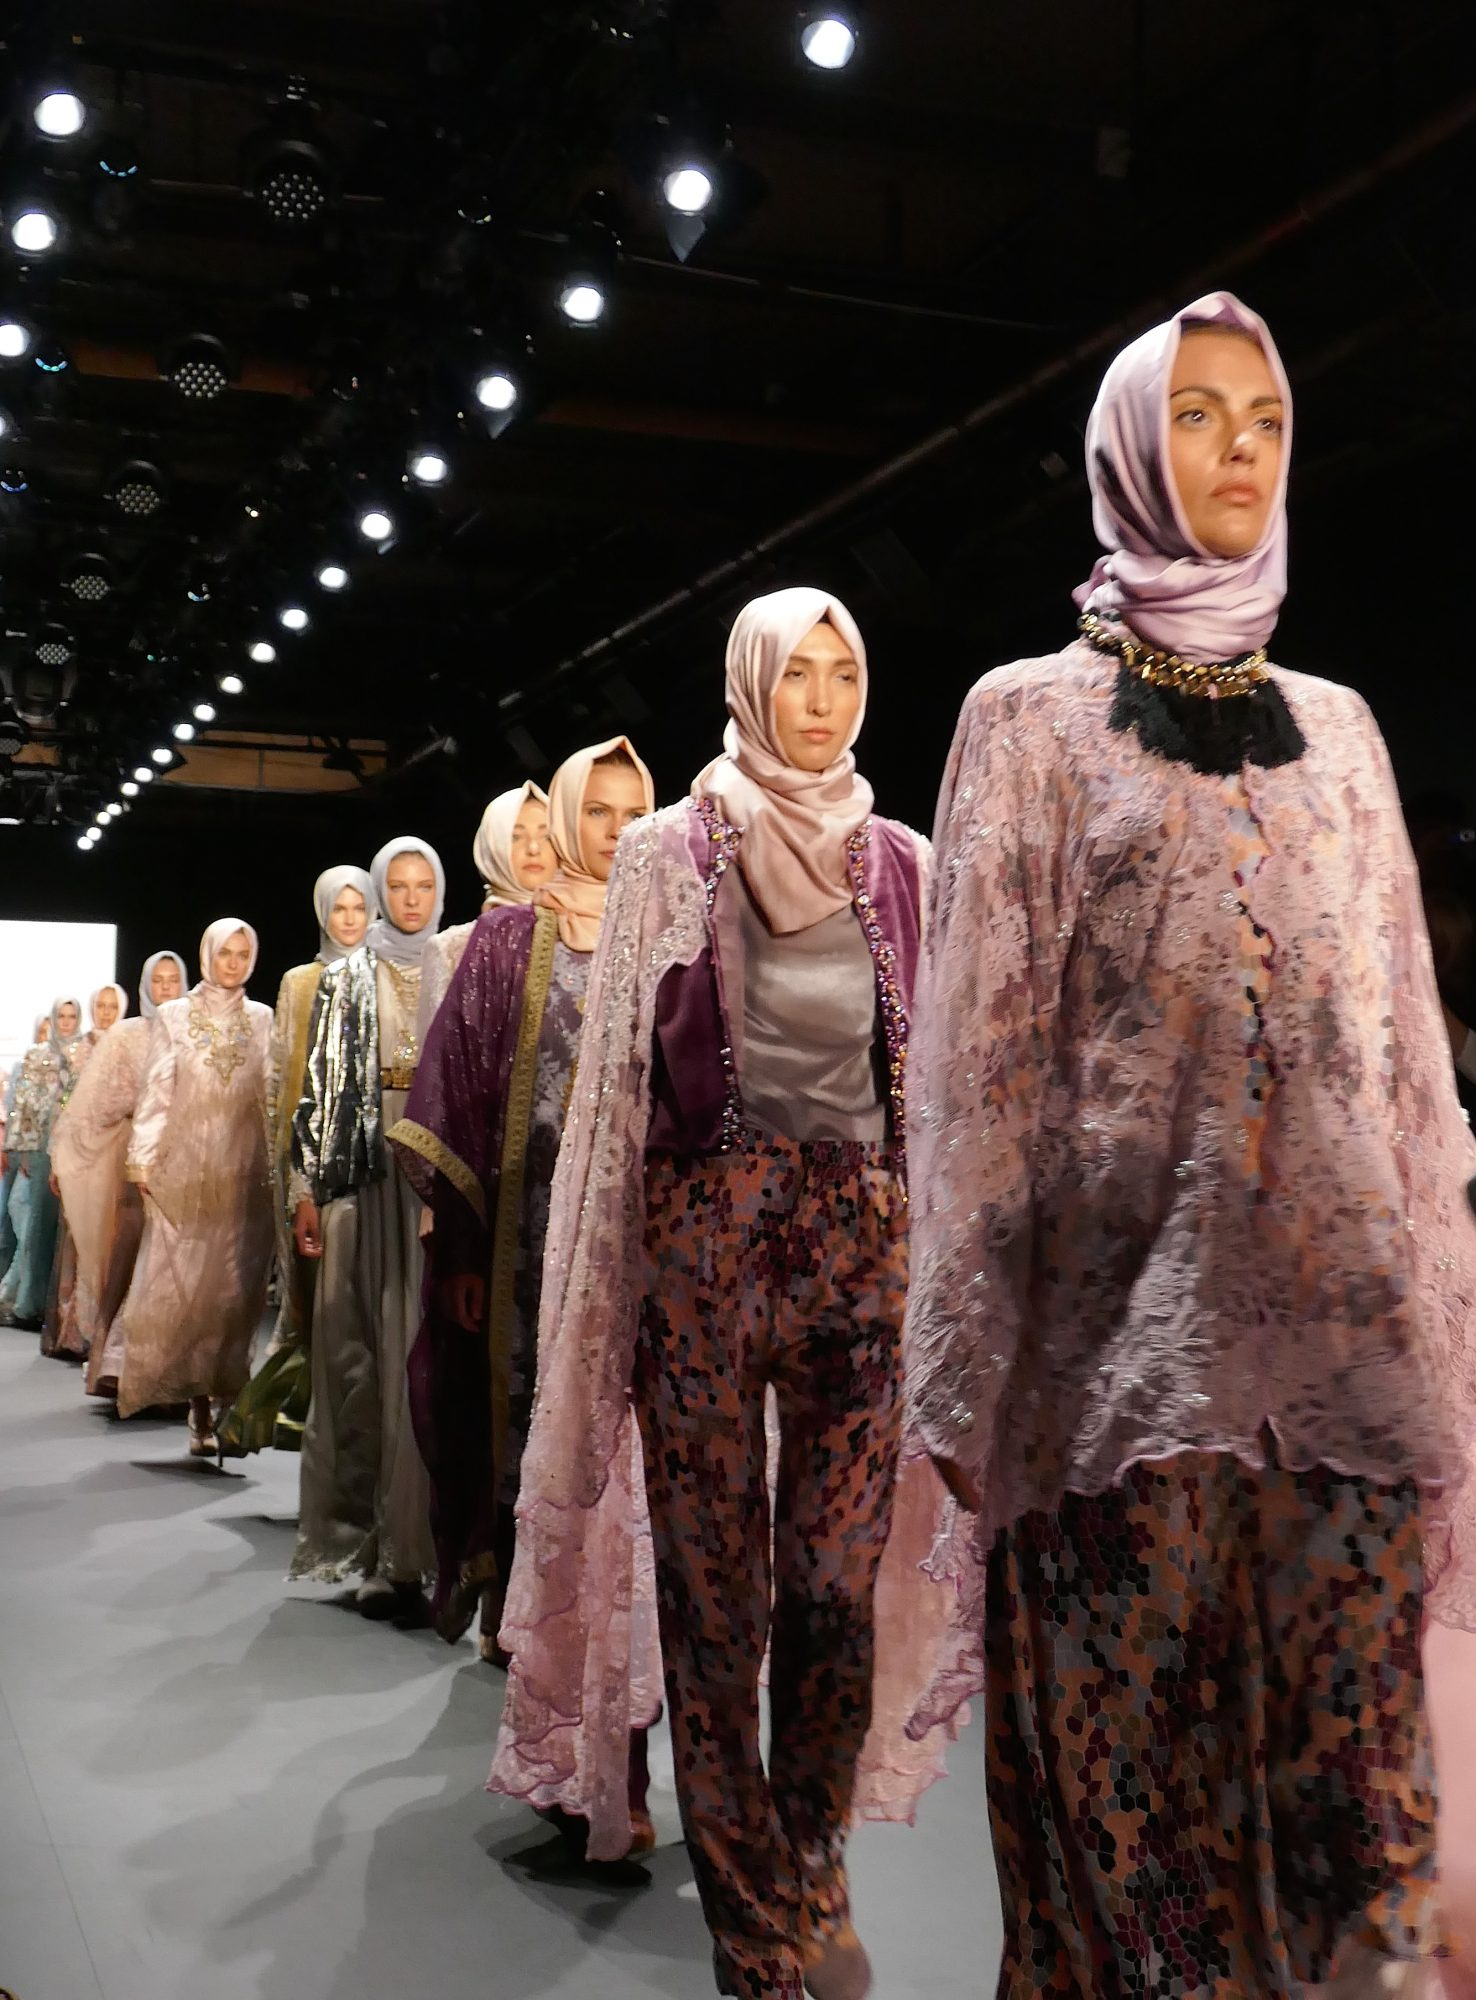 NEW YORK, NY - SEPTEMBER 12 :  Models walk the runway as they present creations by Anniesa Hasibuan                     during New York Fashion Week in New York, United States on September 12, 2016. (Photo by Selcuk Acar/Anadolu Agency/Getty Images)